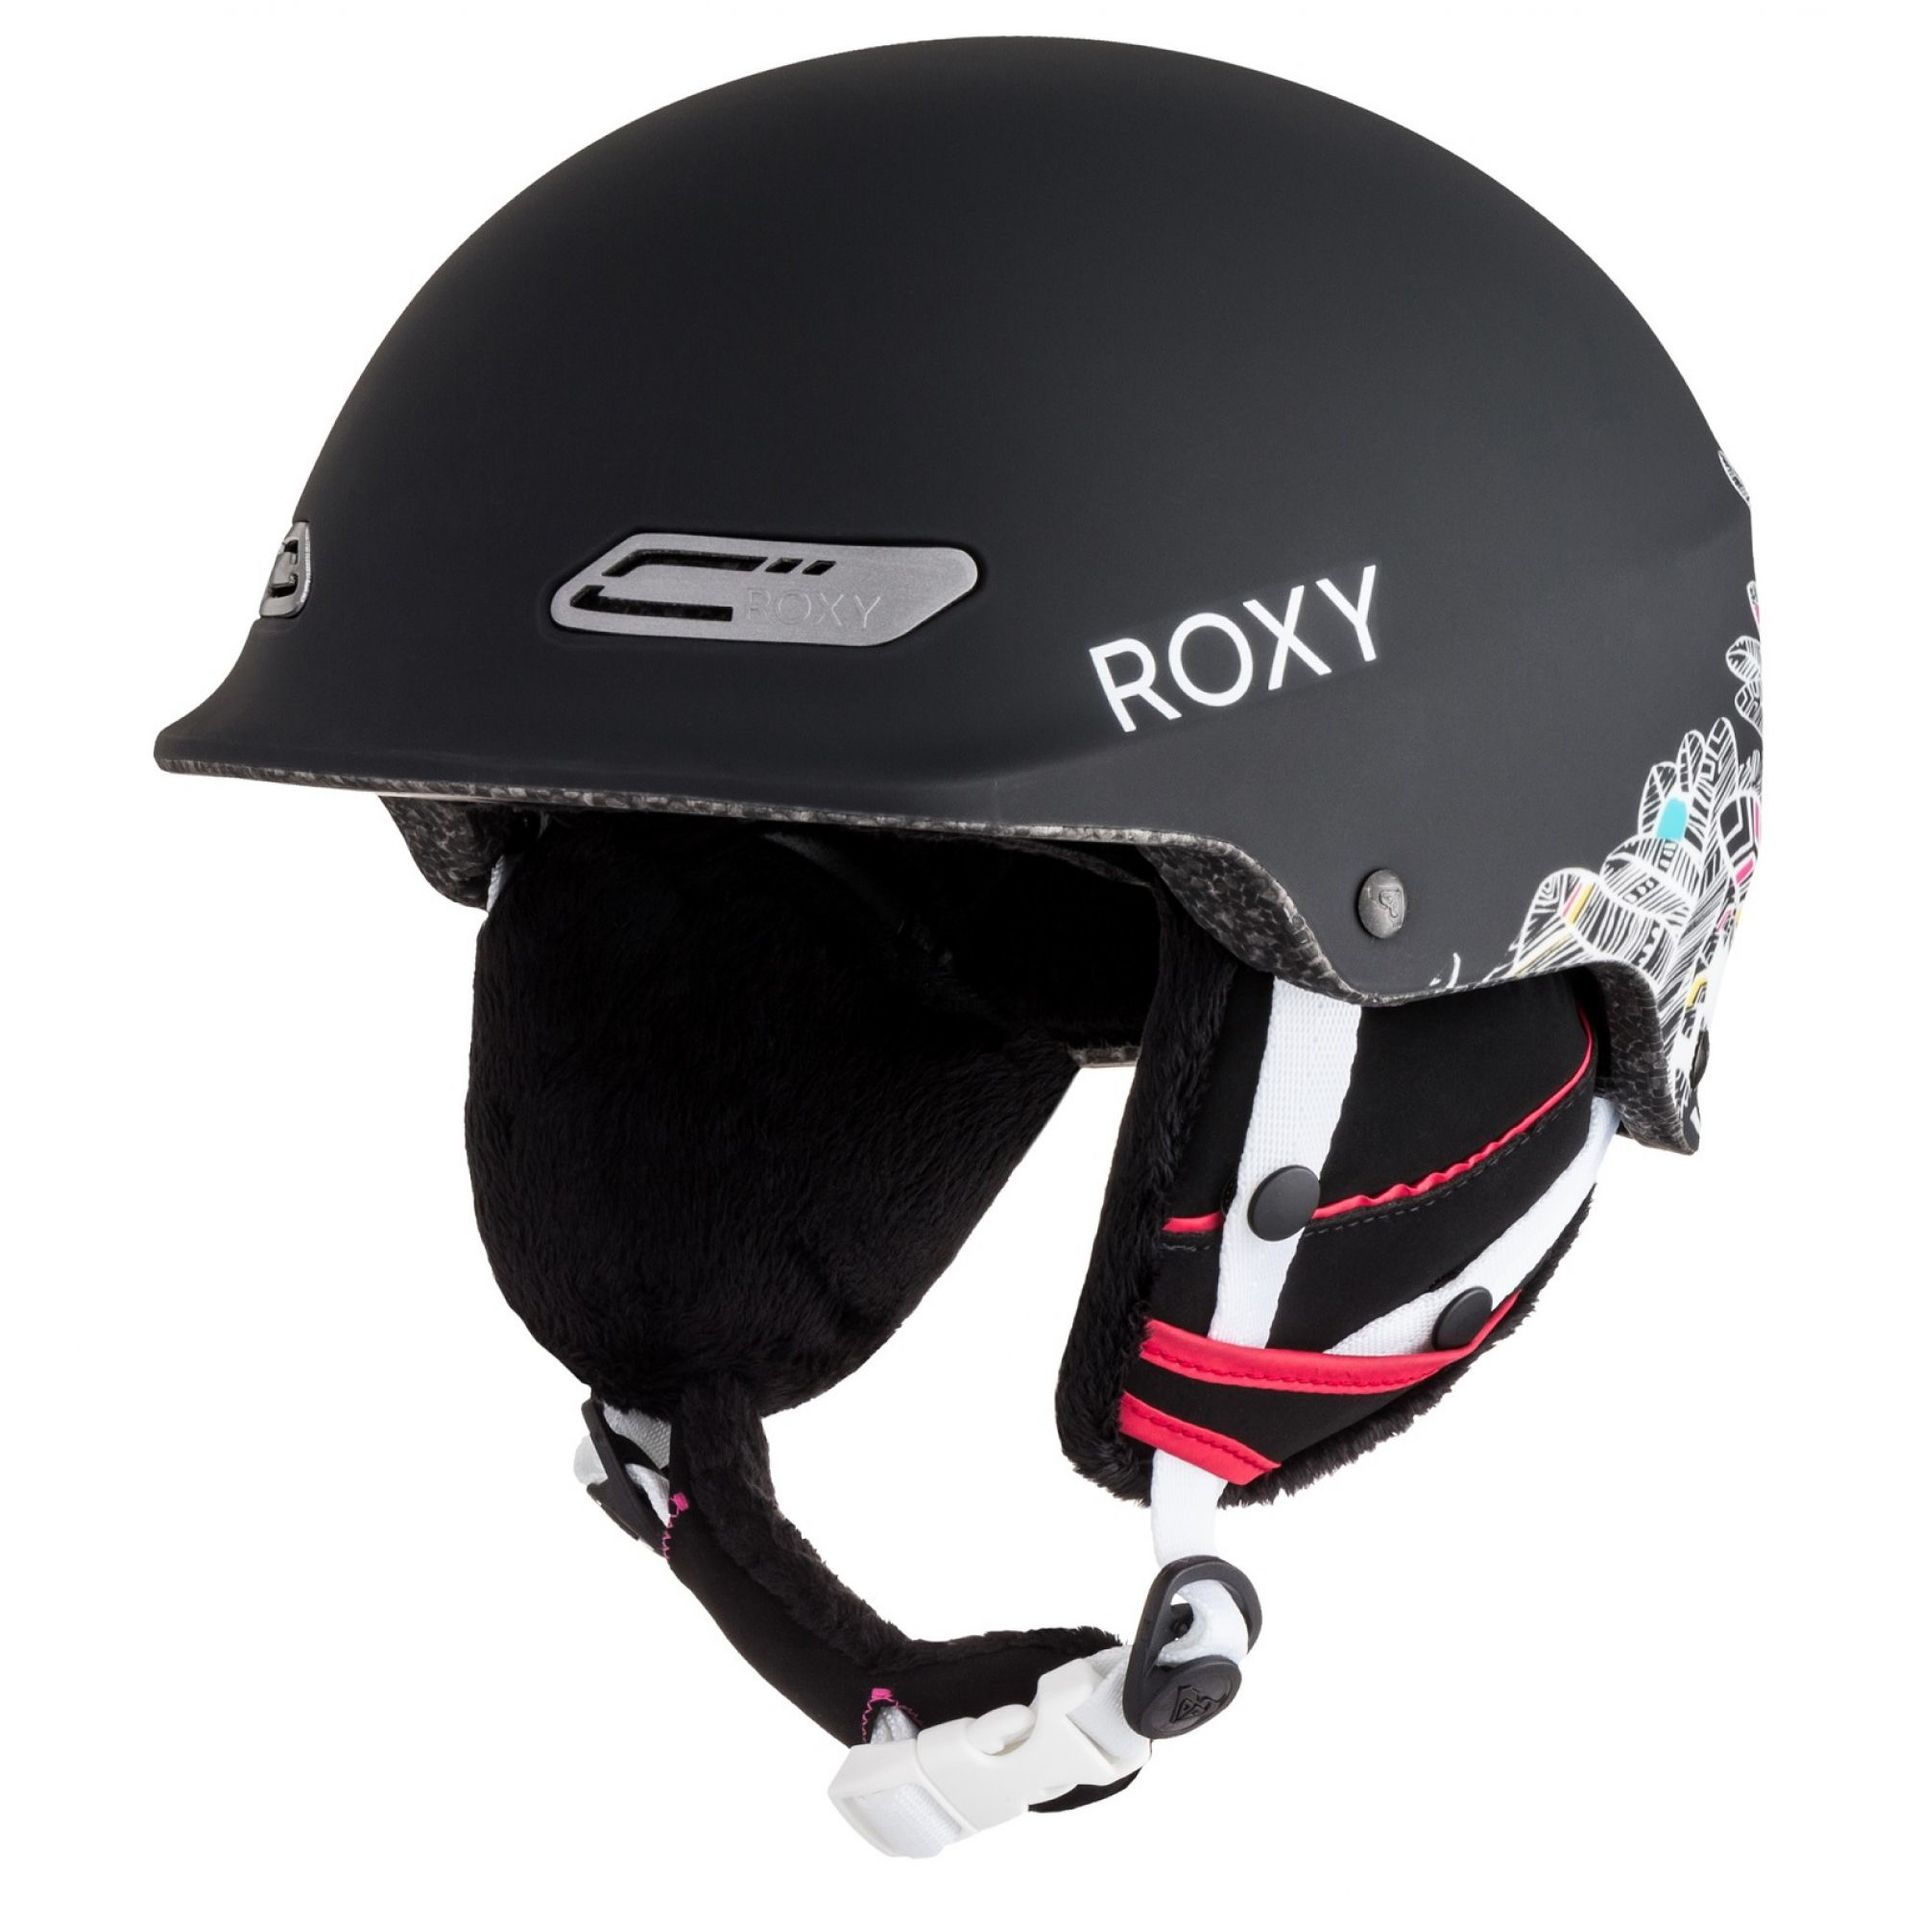 KASK ROXY POWER POWDER KVJ8 HA HUI TRUE BLACK